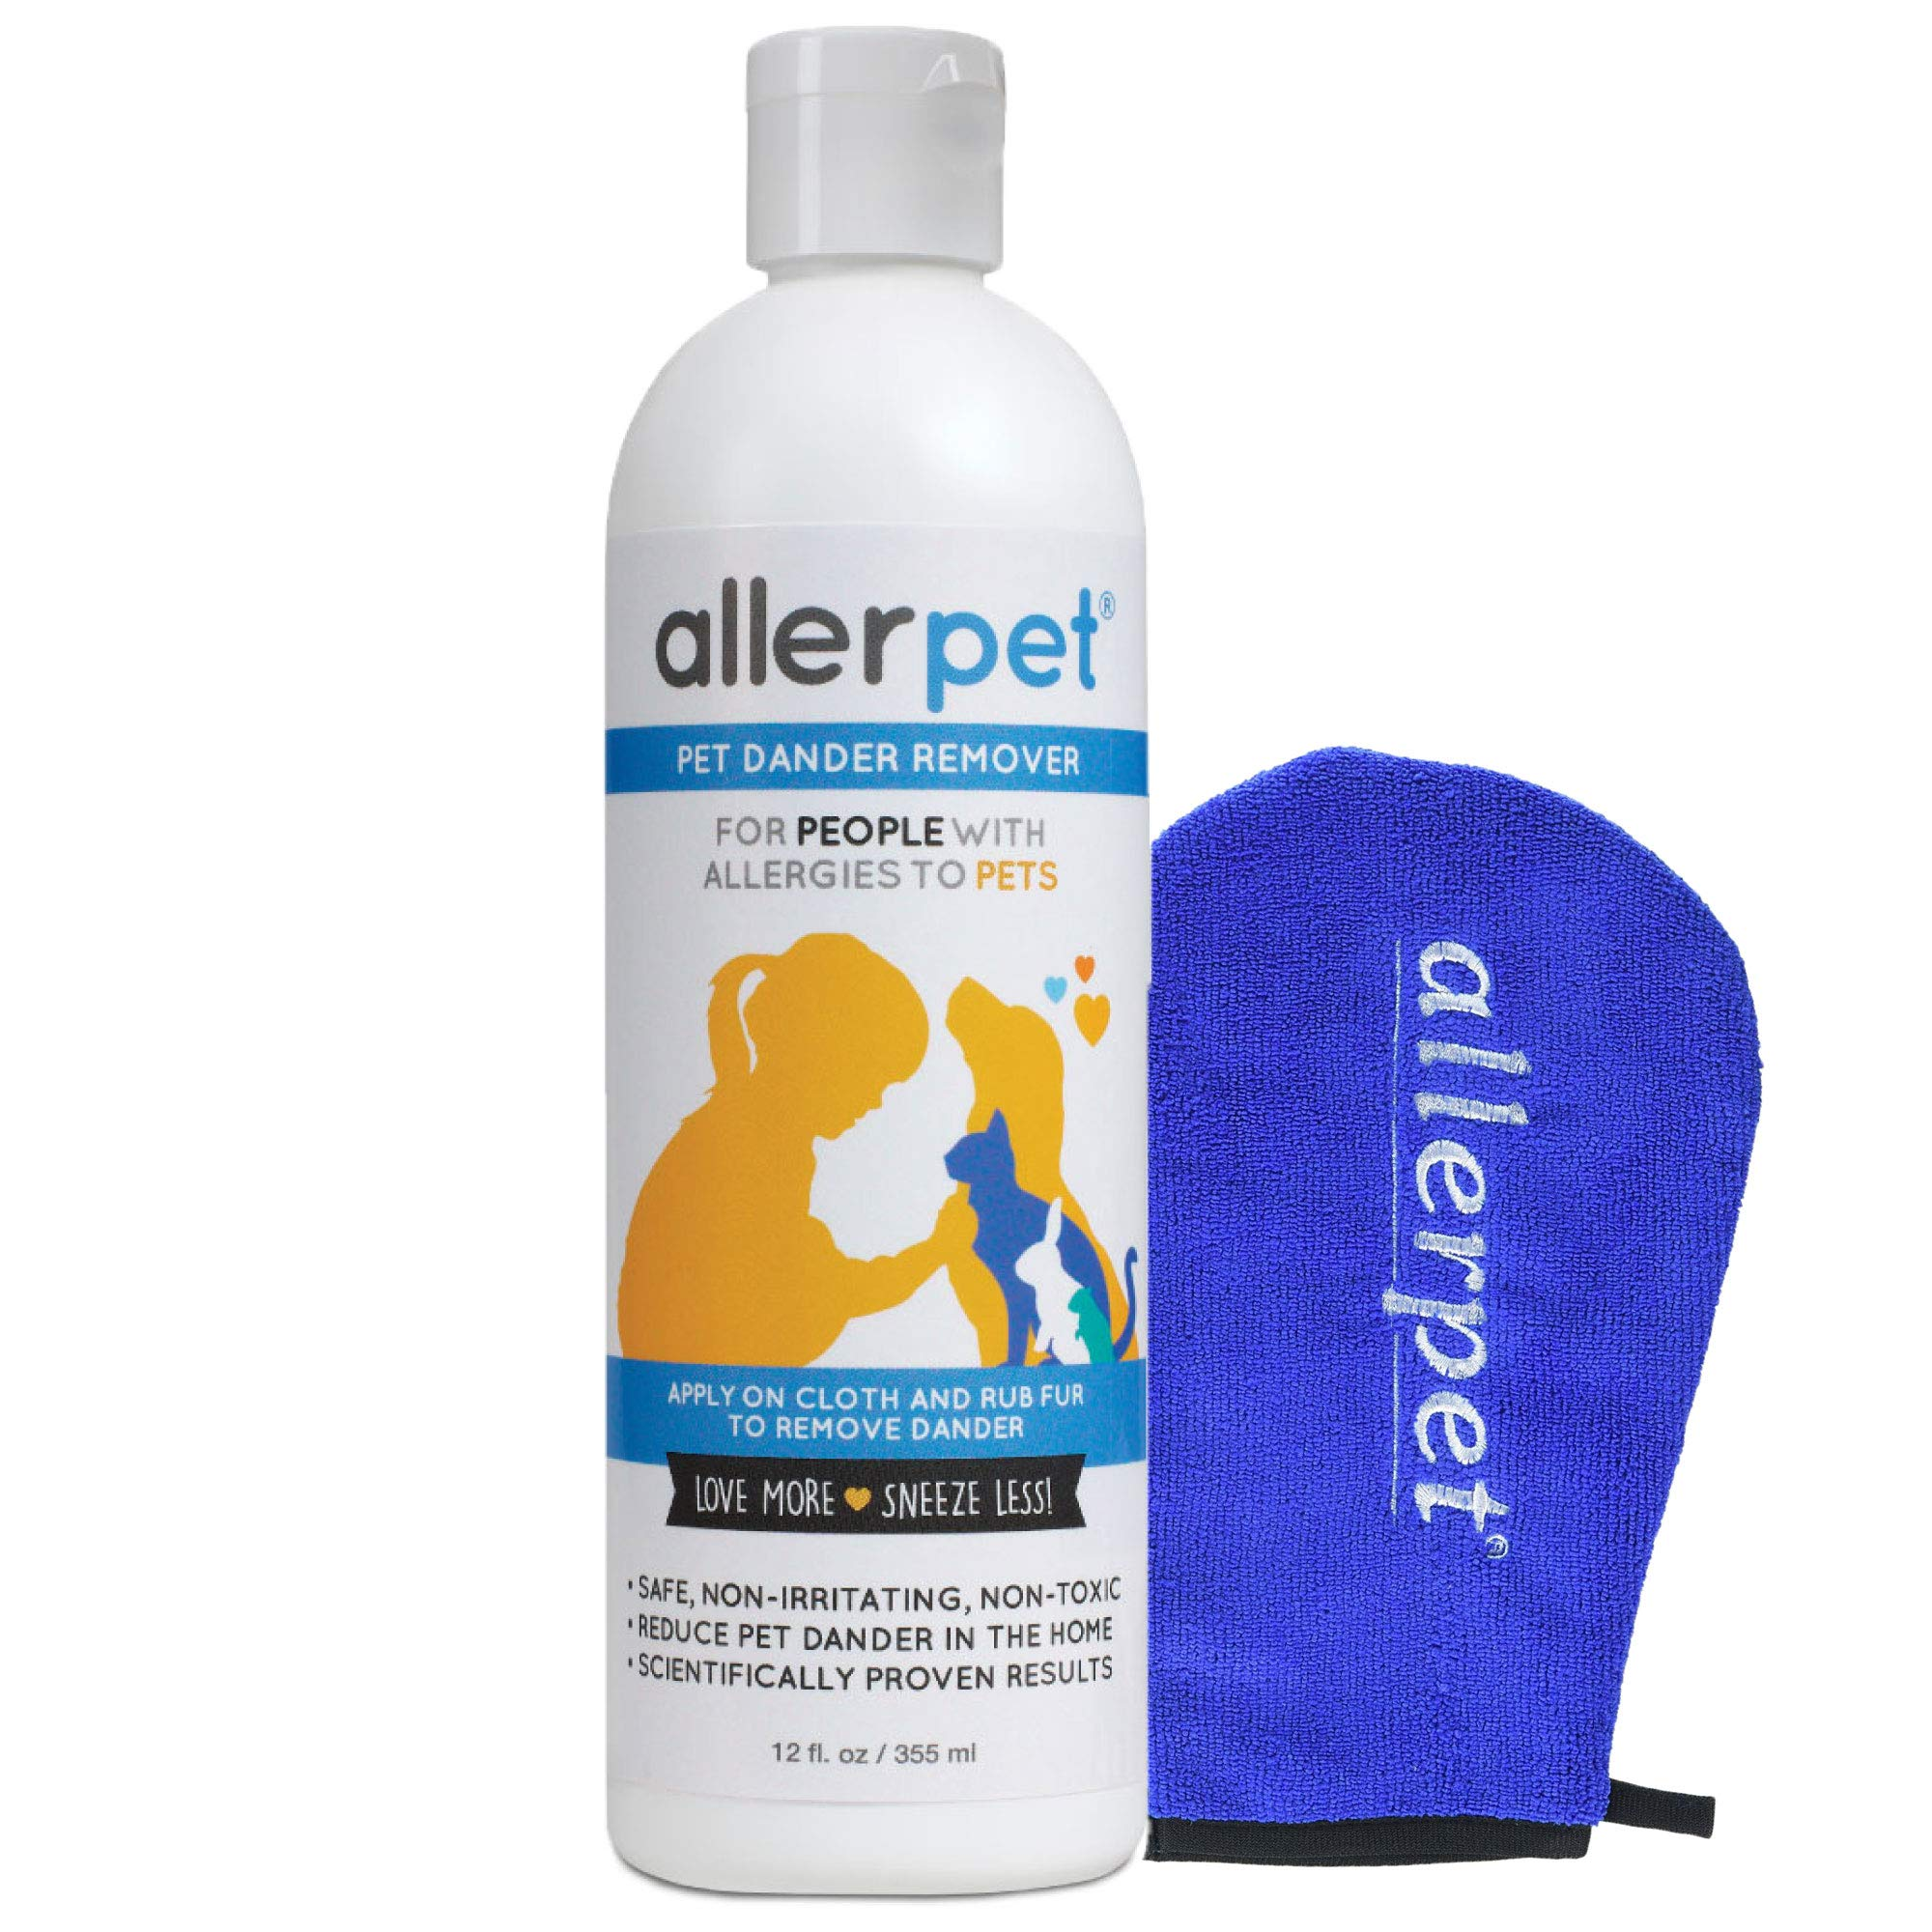 Allerpet Pet Allergy Relief - Best Dog & Cat Pet Dander Remover for Allergens + Works for Any Pet w/Fur or Feathers - 100% Non-Toxic & Safe for Pets + Bonus Applicator Mitt by Allerpet